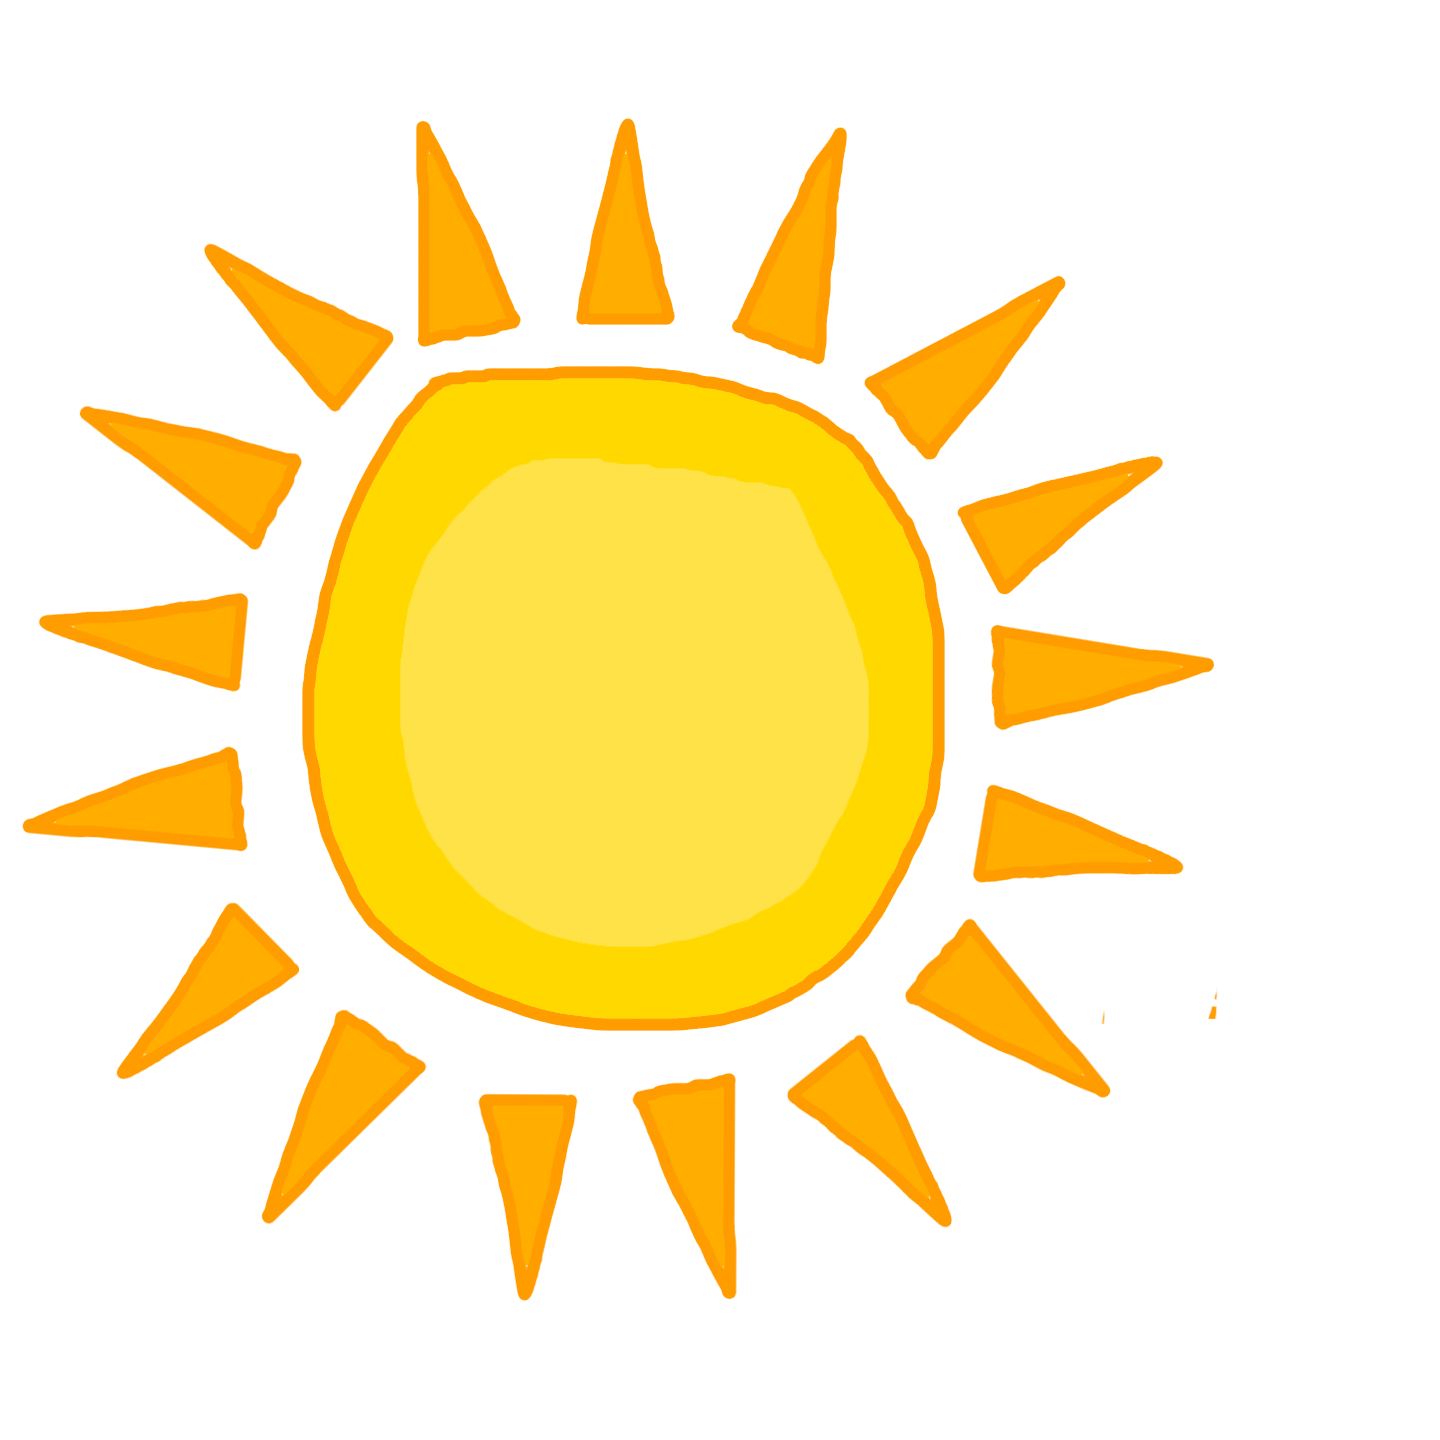 Sun Png Clipart PNG Image - Sun PNG Transparent Background